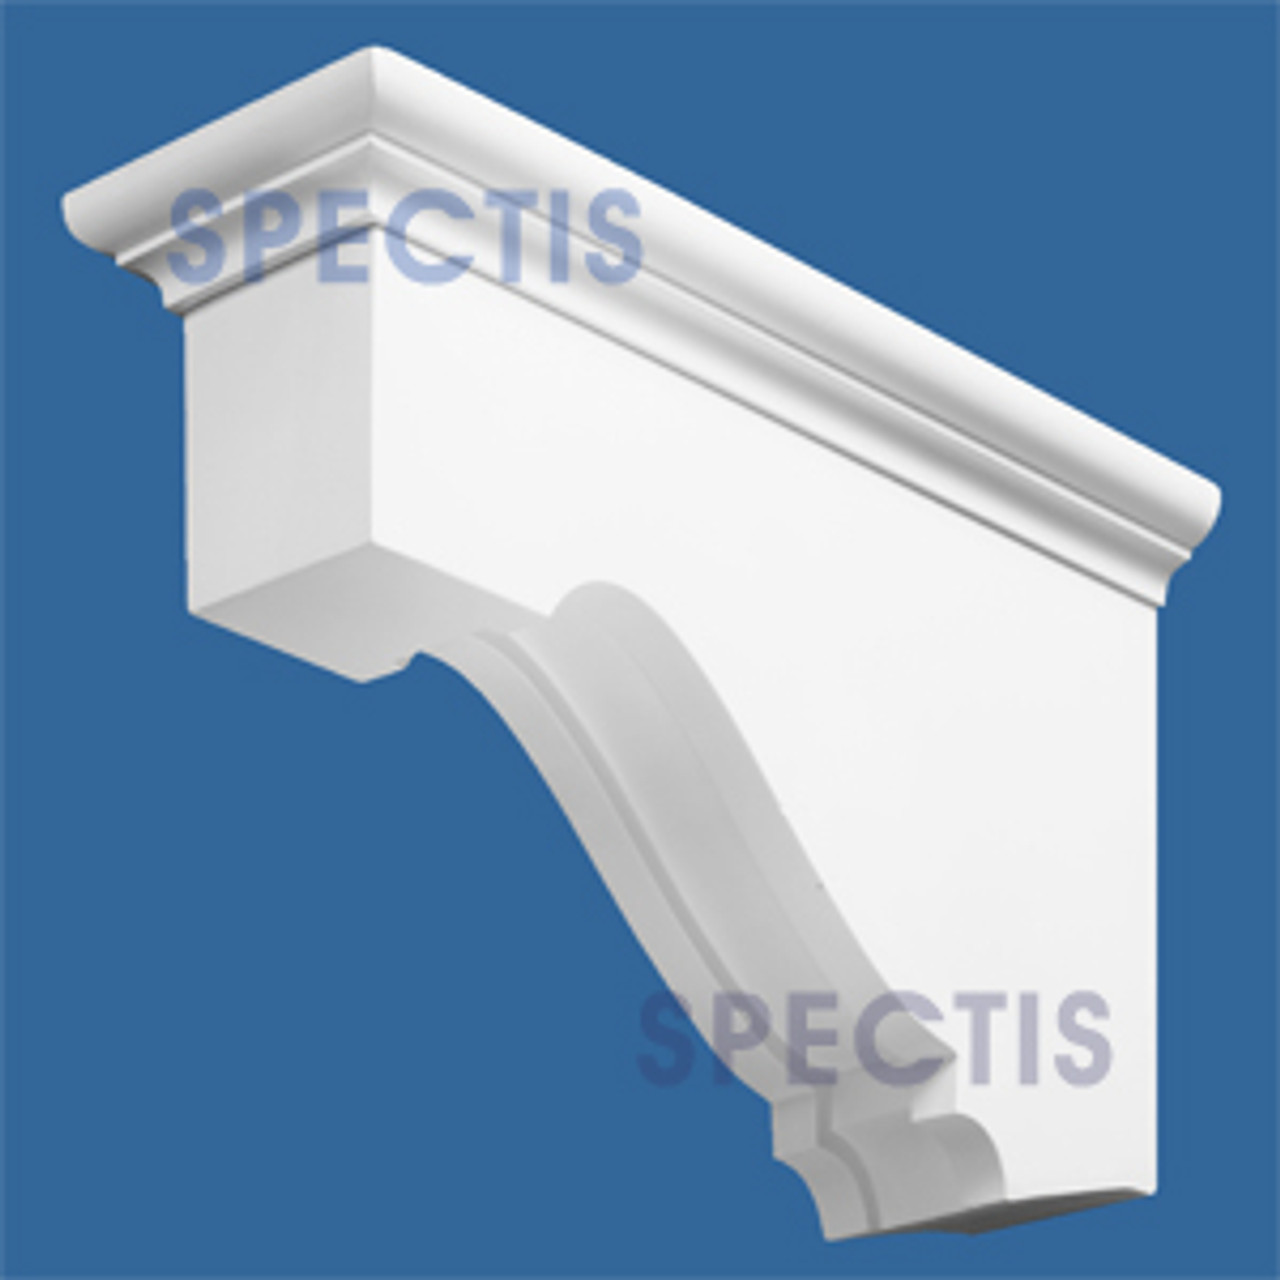 """BL2439 Spectis Eave Block or Bracket 6.5""""W x 12.5""""H x 22"""" Projection"""